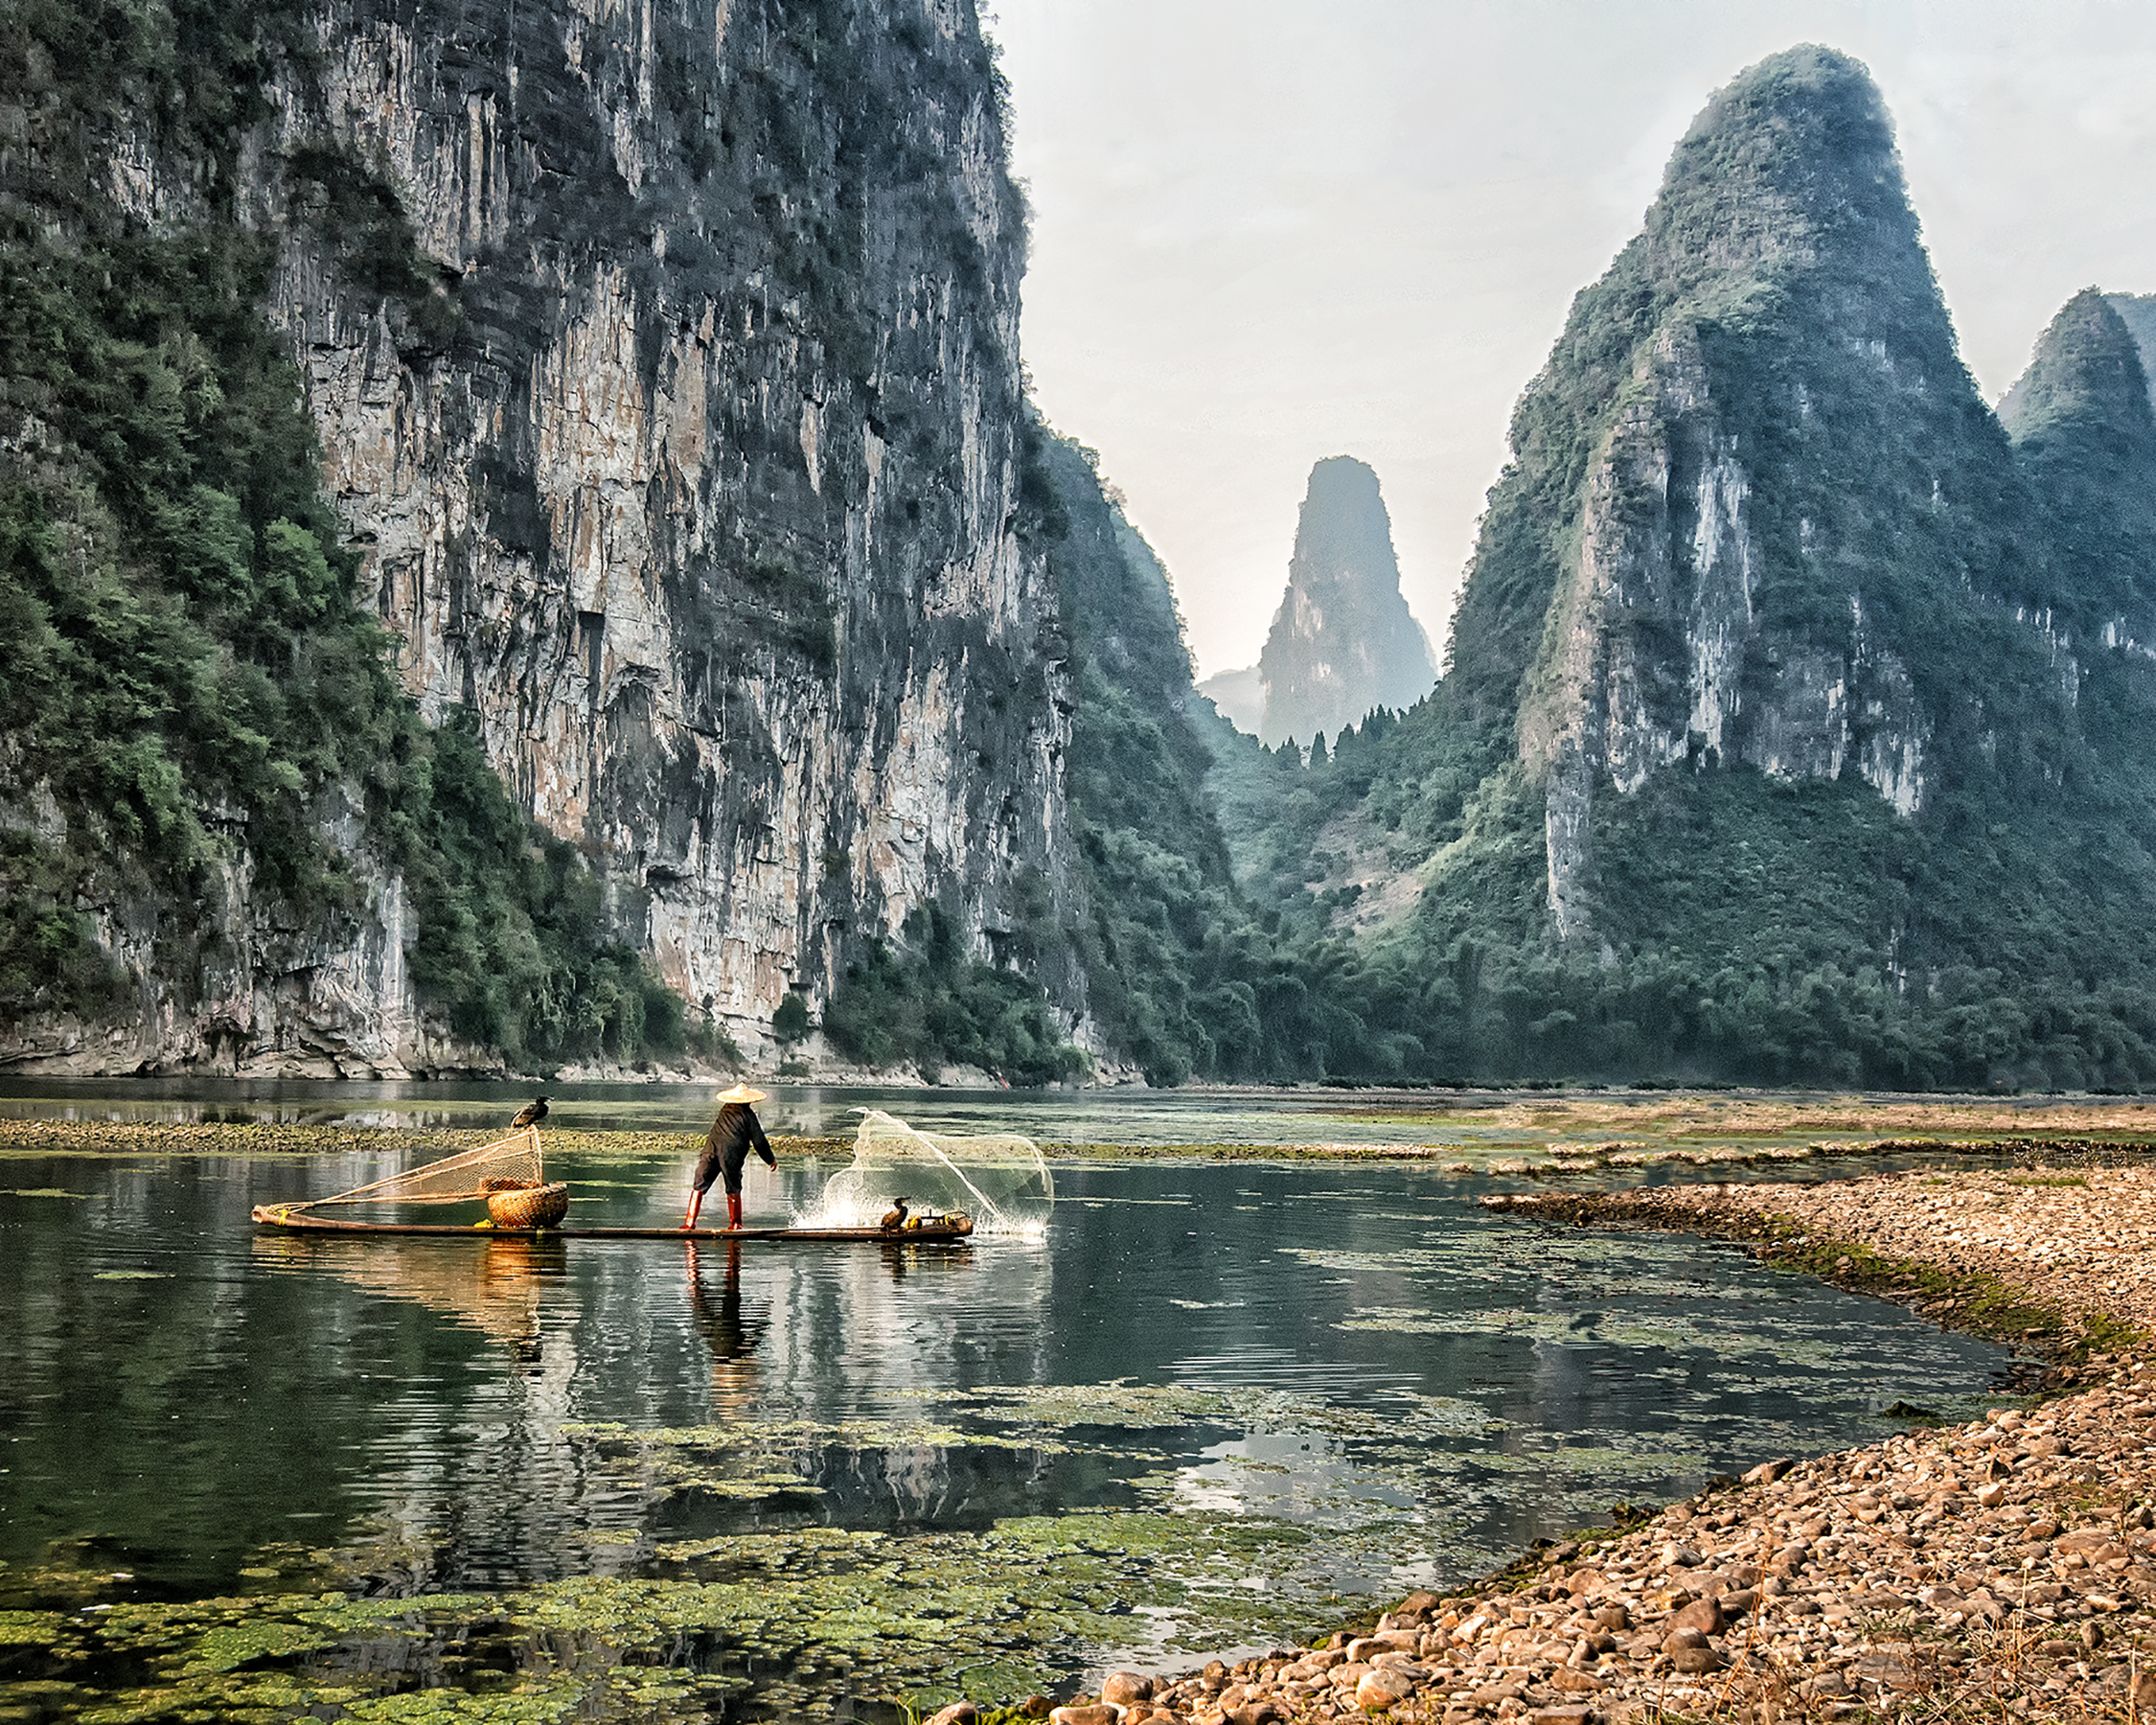 Fishing at Li River